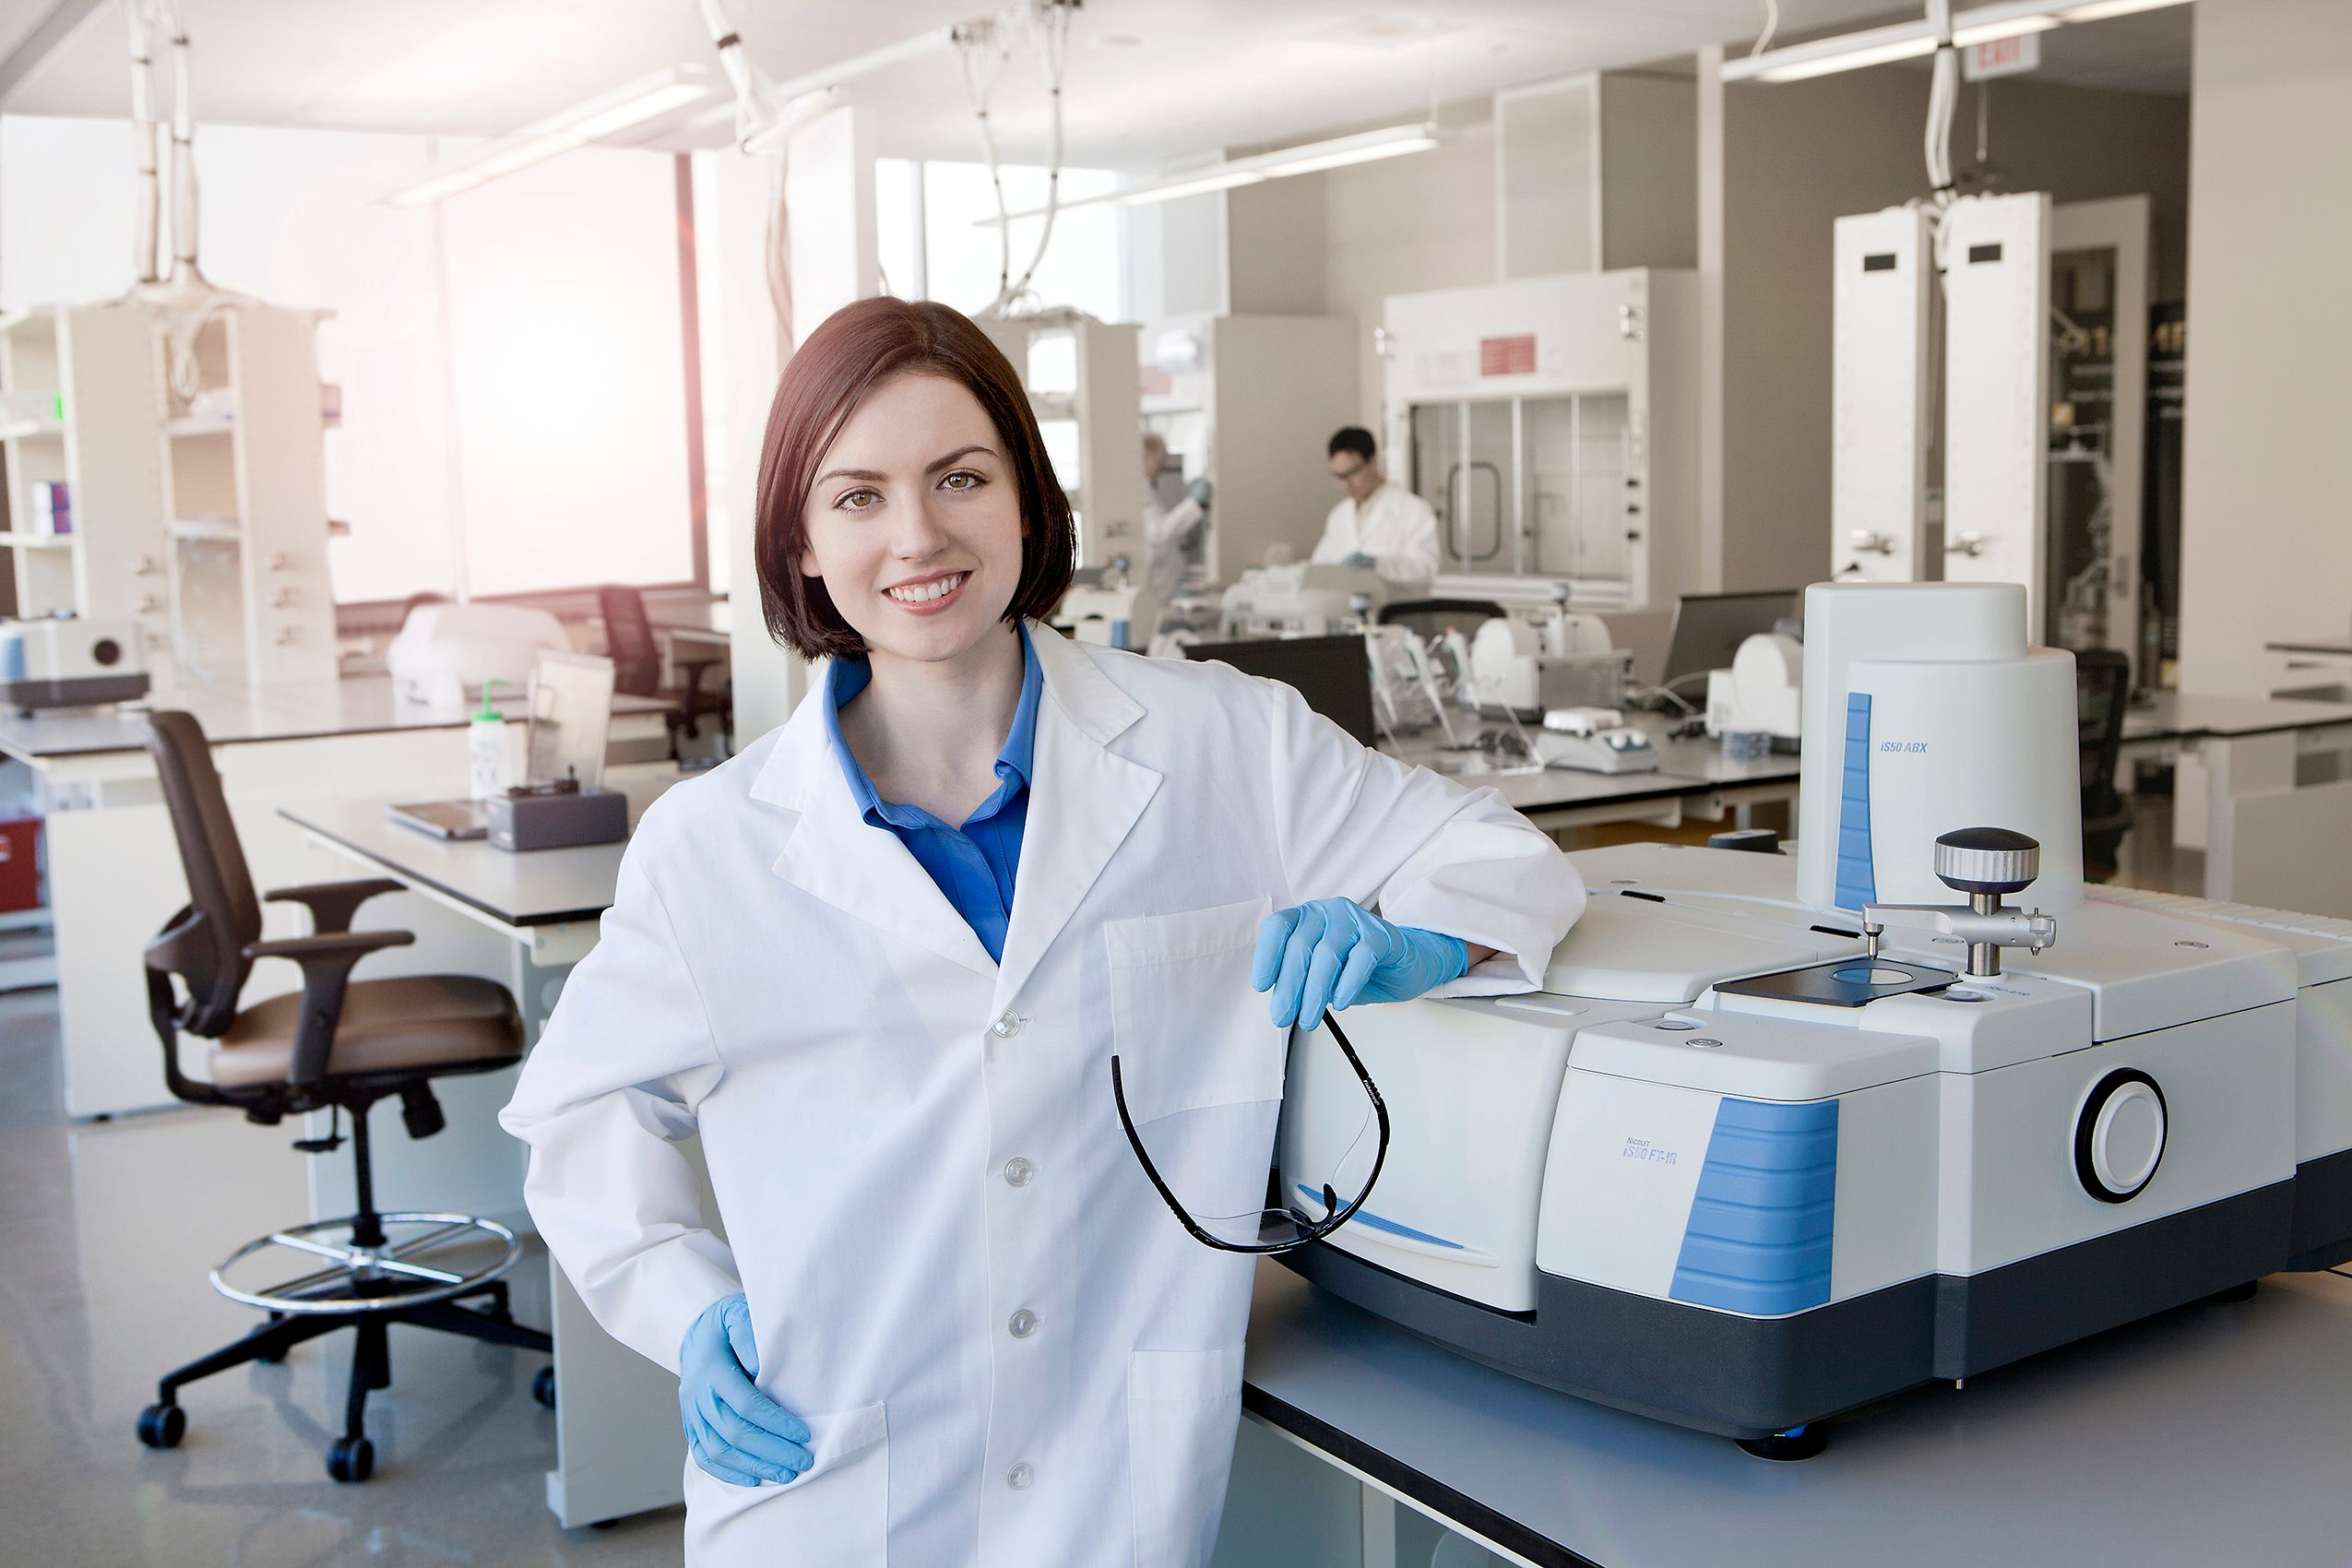 Girl_in_Lab_3067_FW.jpg